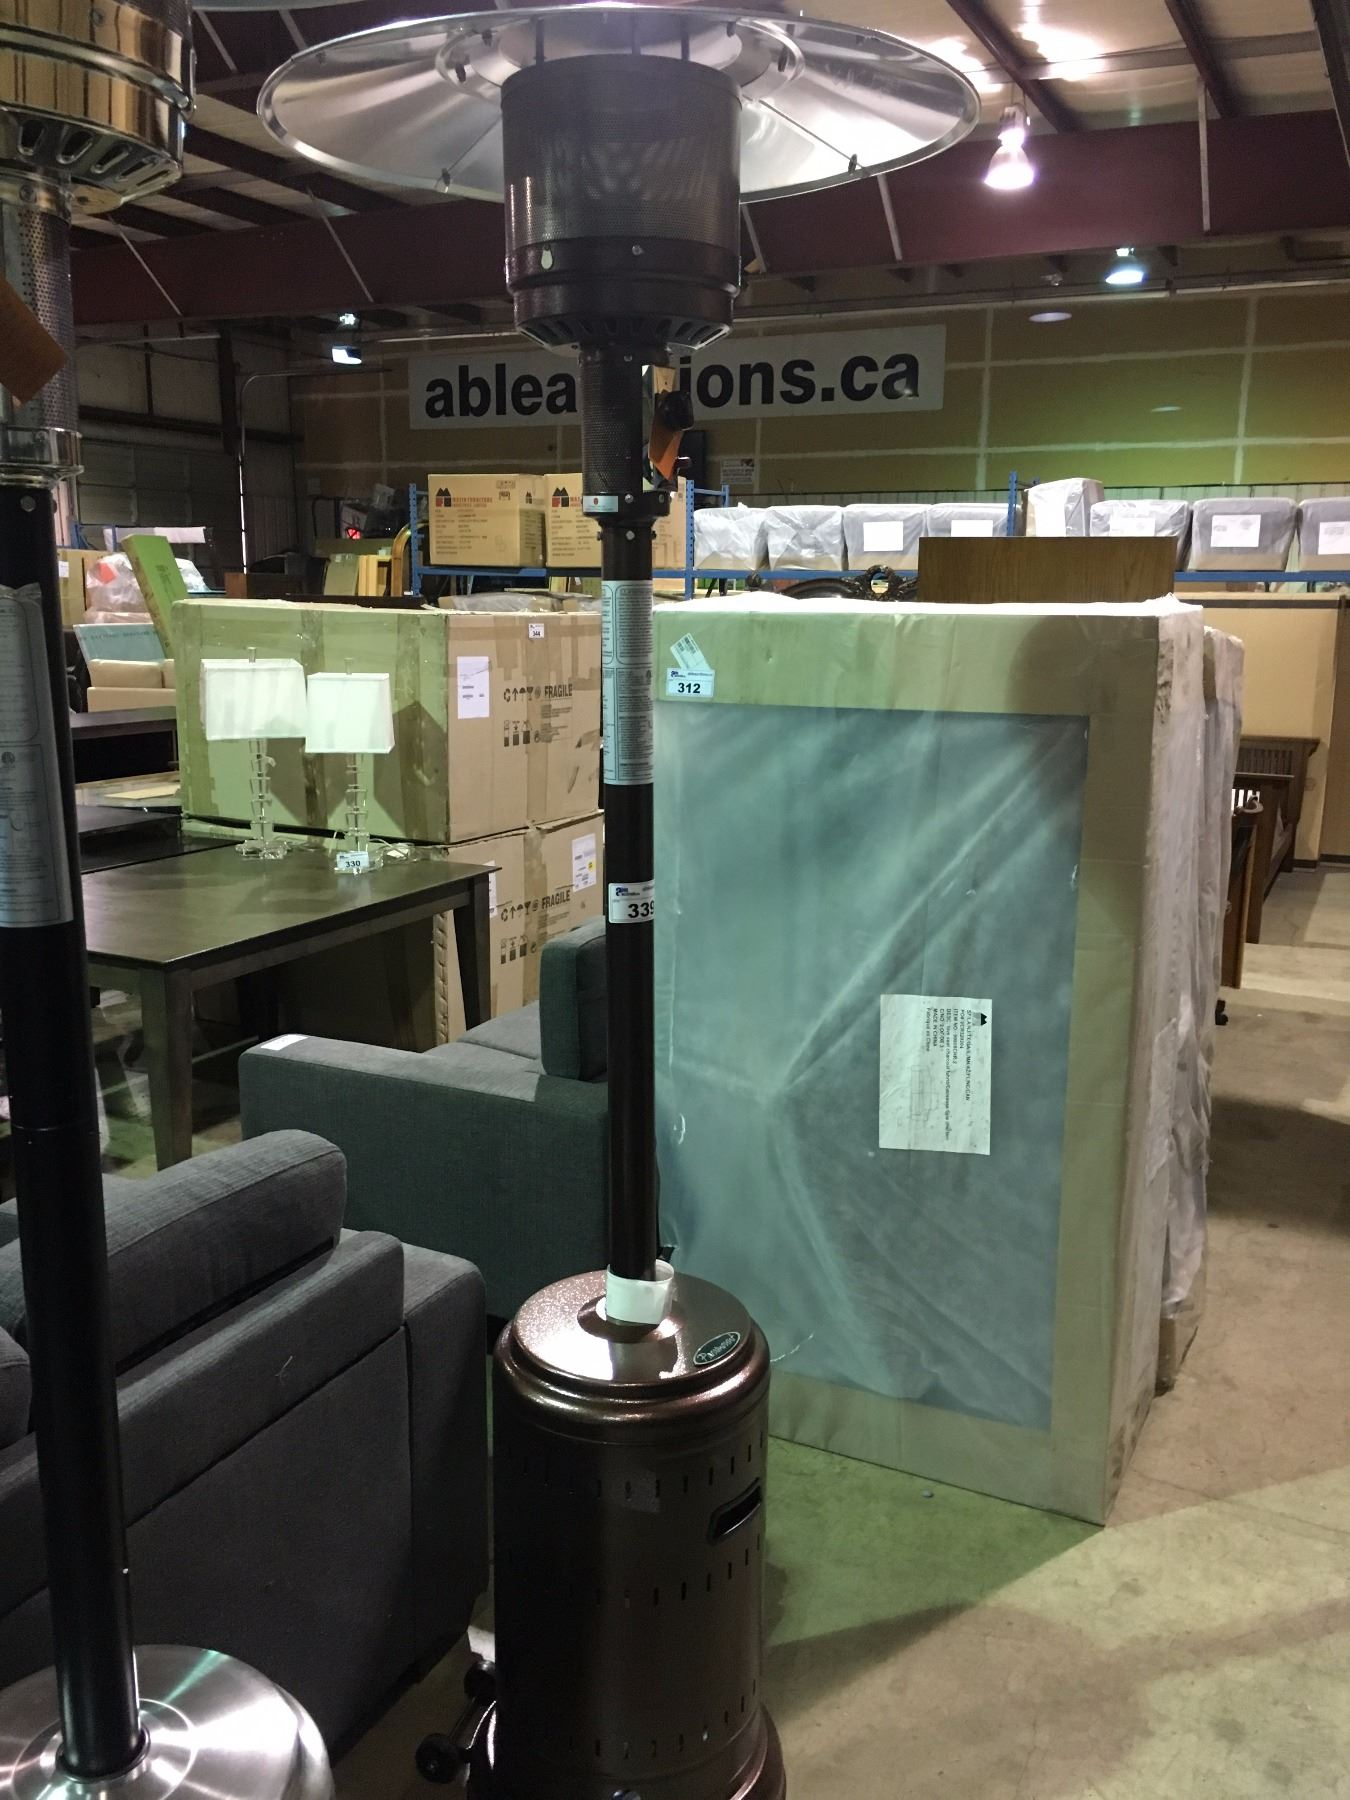 Paramount Bronze Propane Outdoor Patio Heater Able Auctions